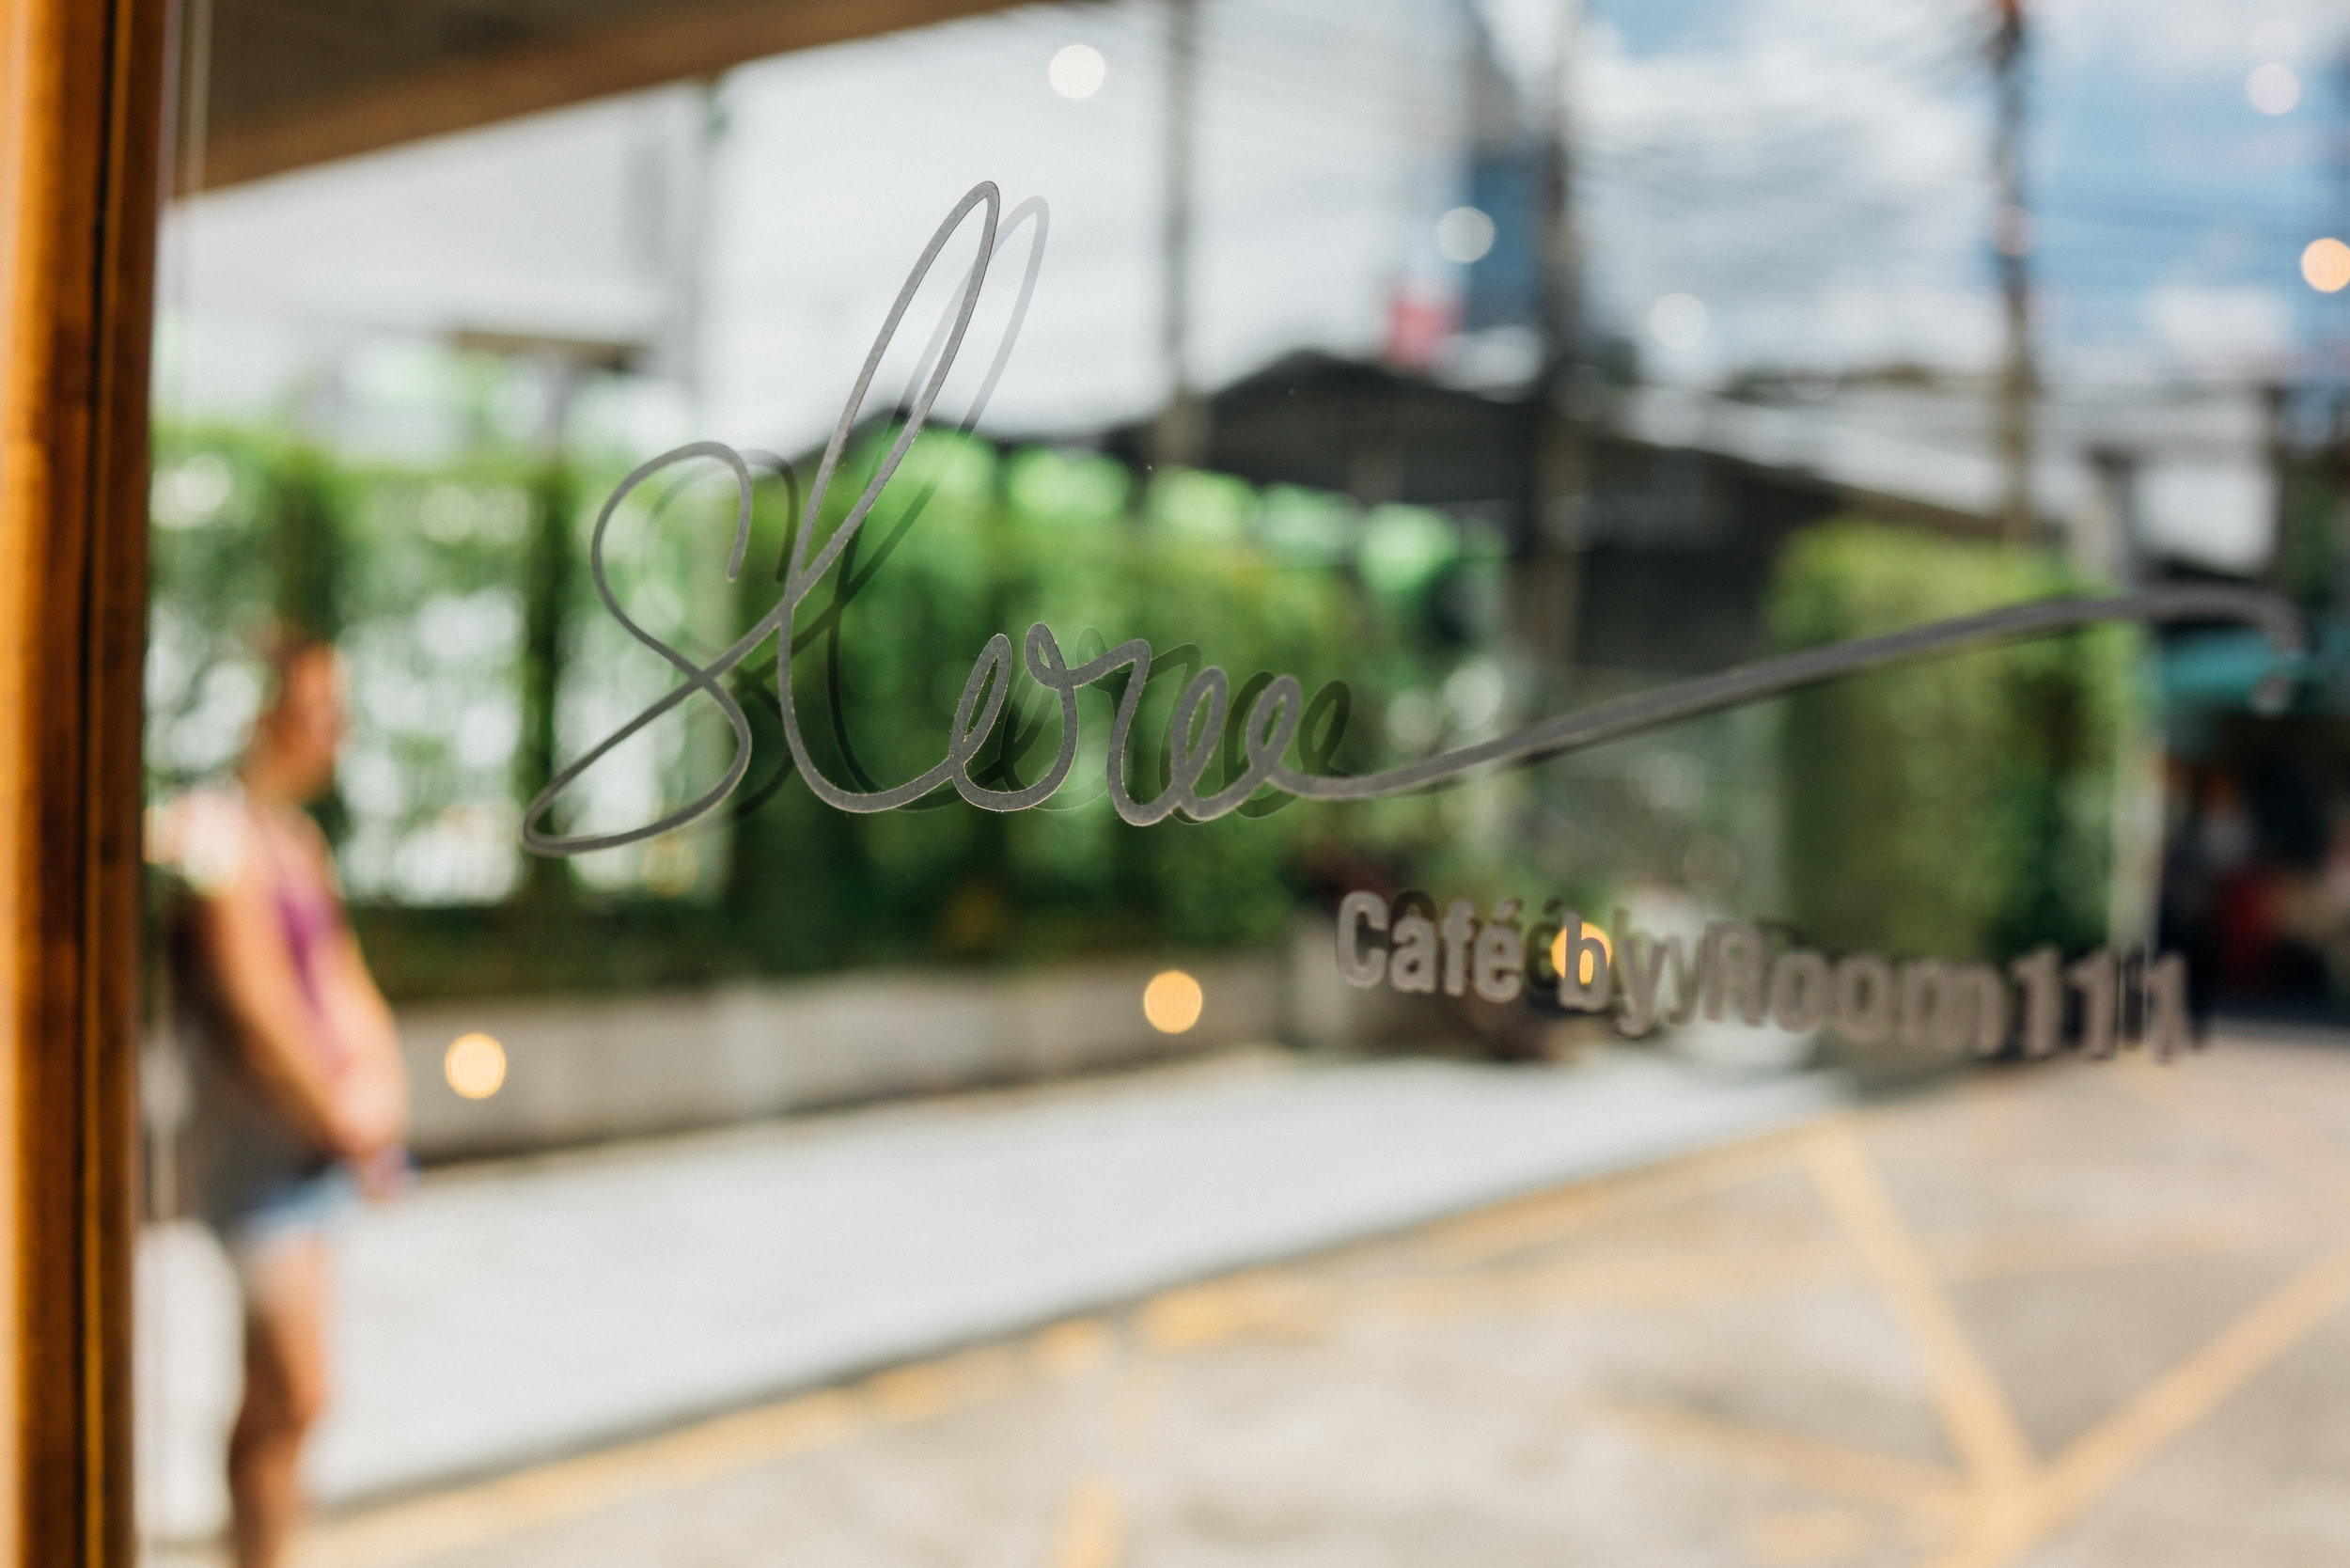 Slow Cafe by Room 111 in Bangkok